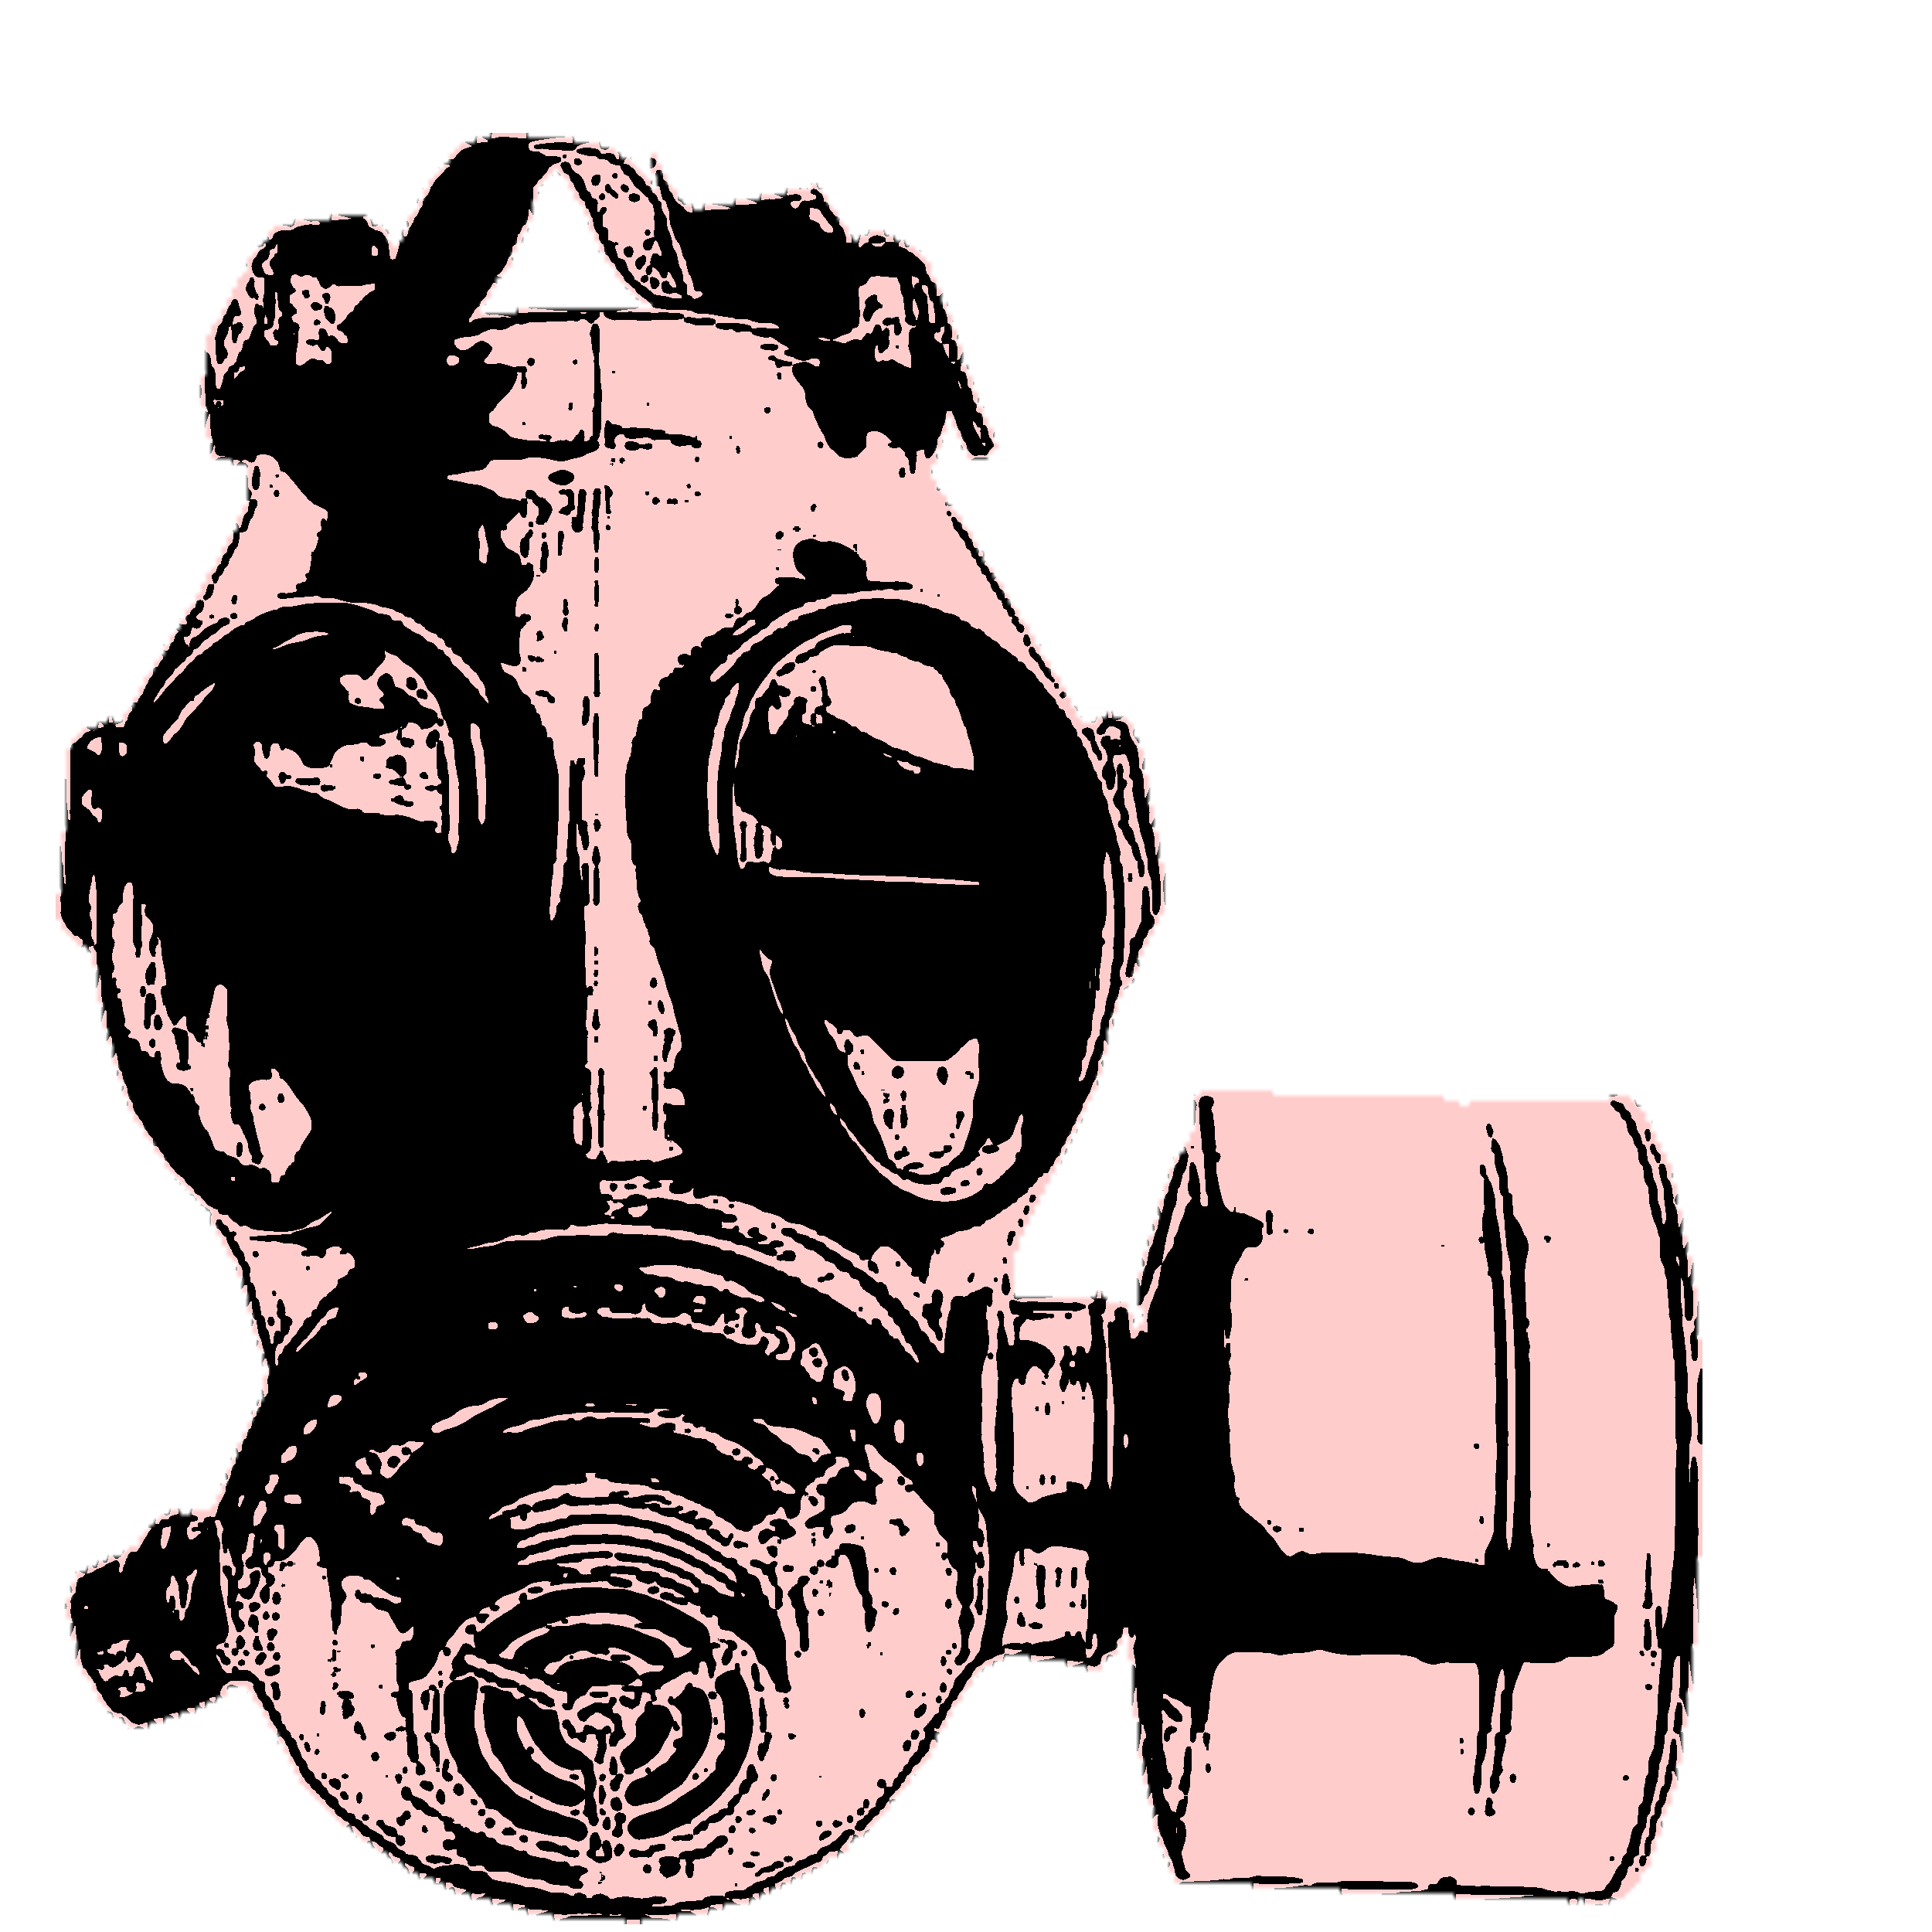 Old drawing gas mask. In pink and black